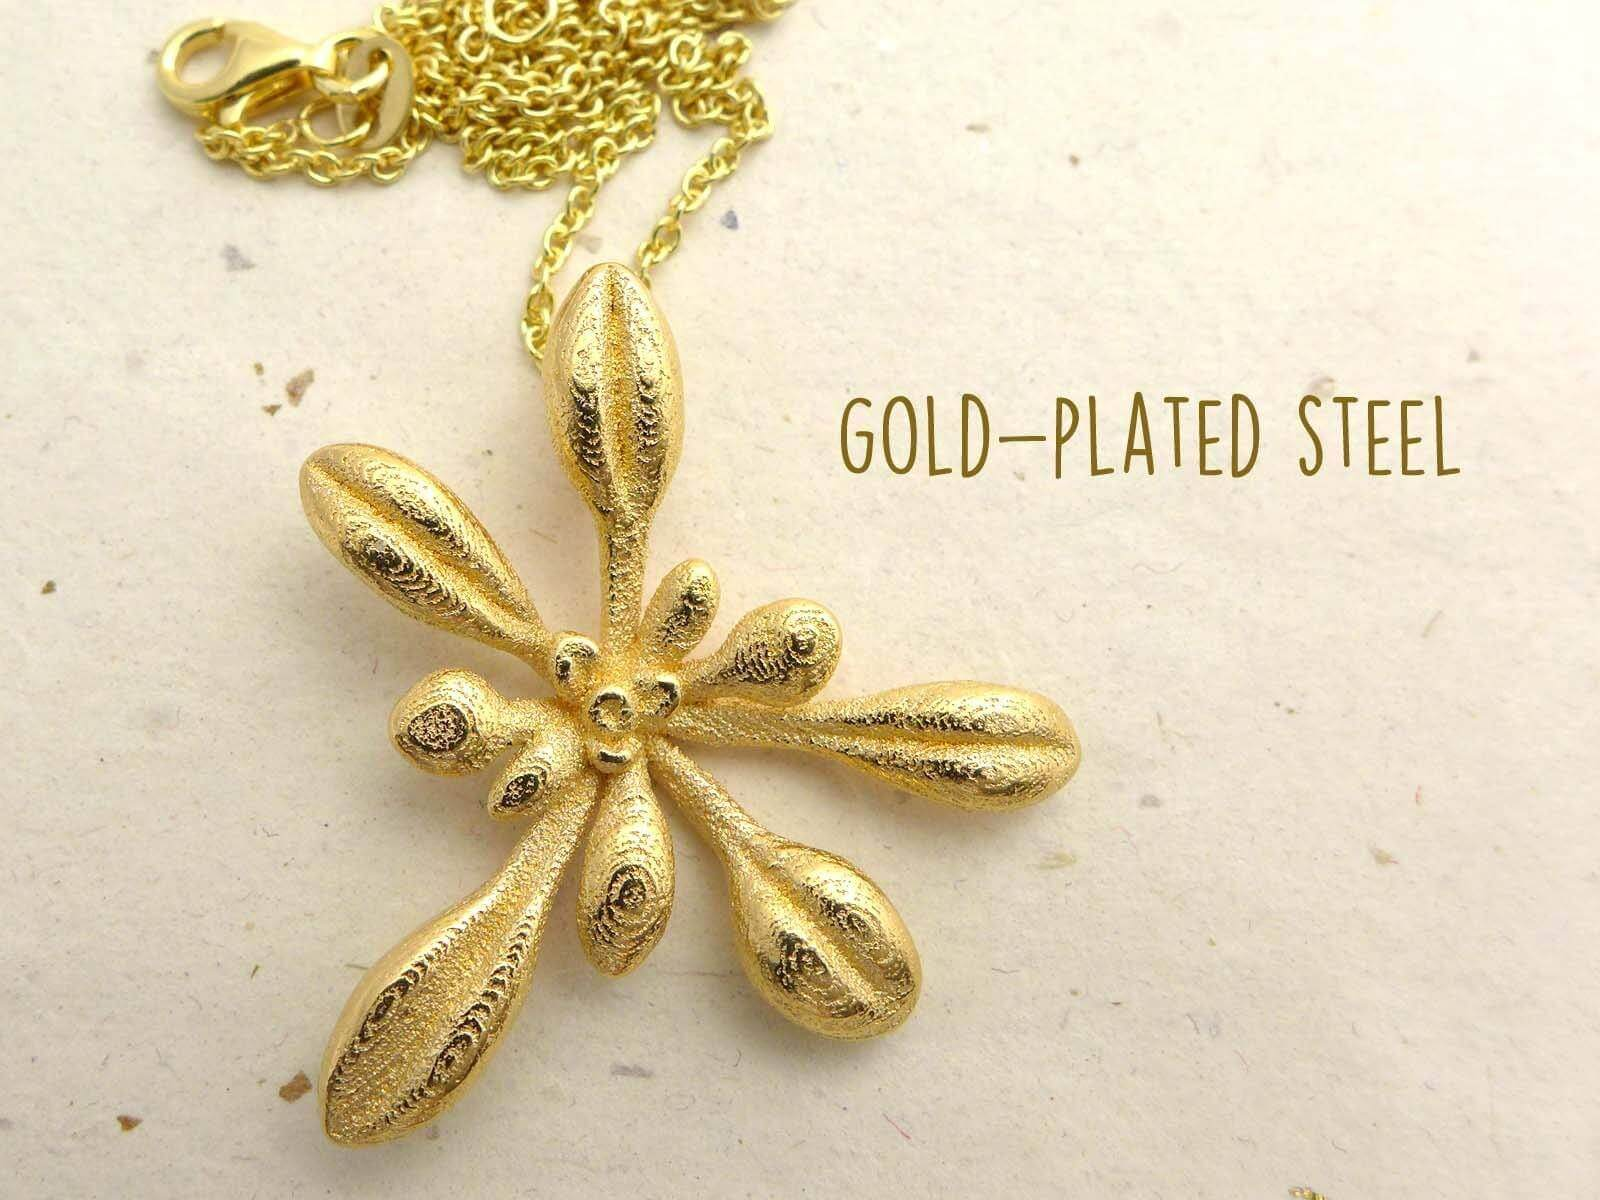 Arabidopsis Rosette Pendant, large Pendant [Ontogenie Science Jewelry] gold-plated steel 40 cm/16 in